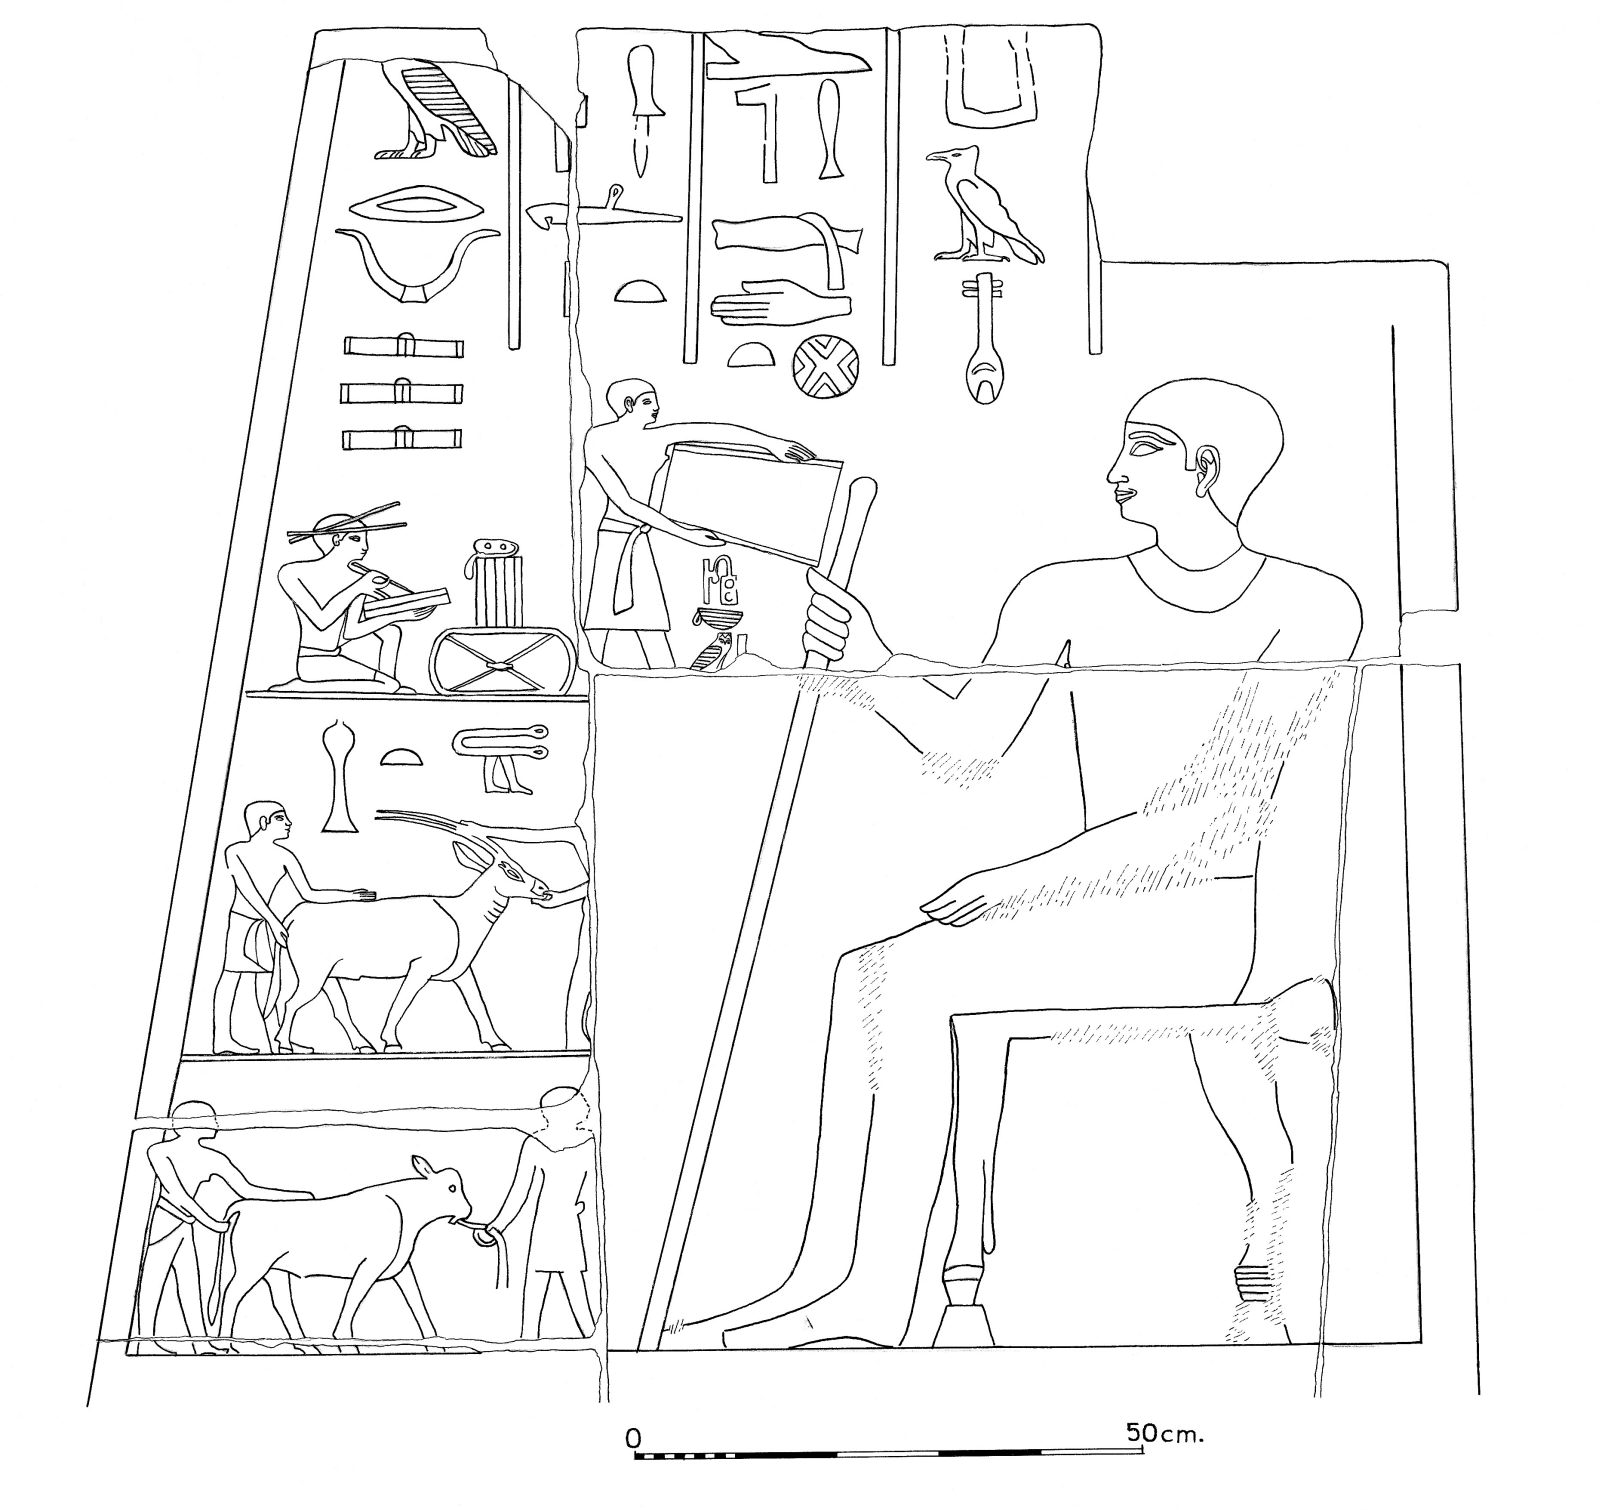 Drawings: G 2150: relief from entrance, S jamb